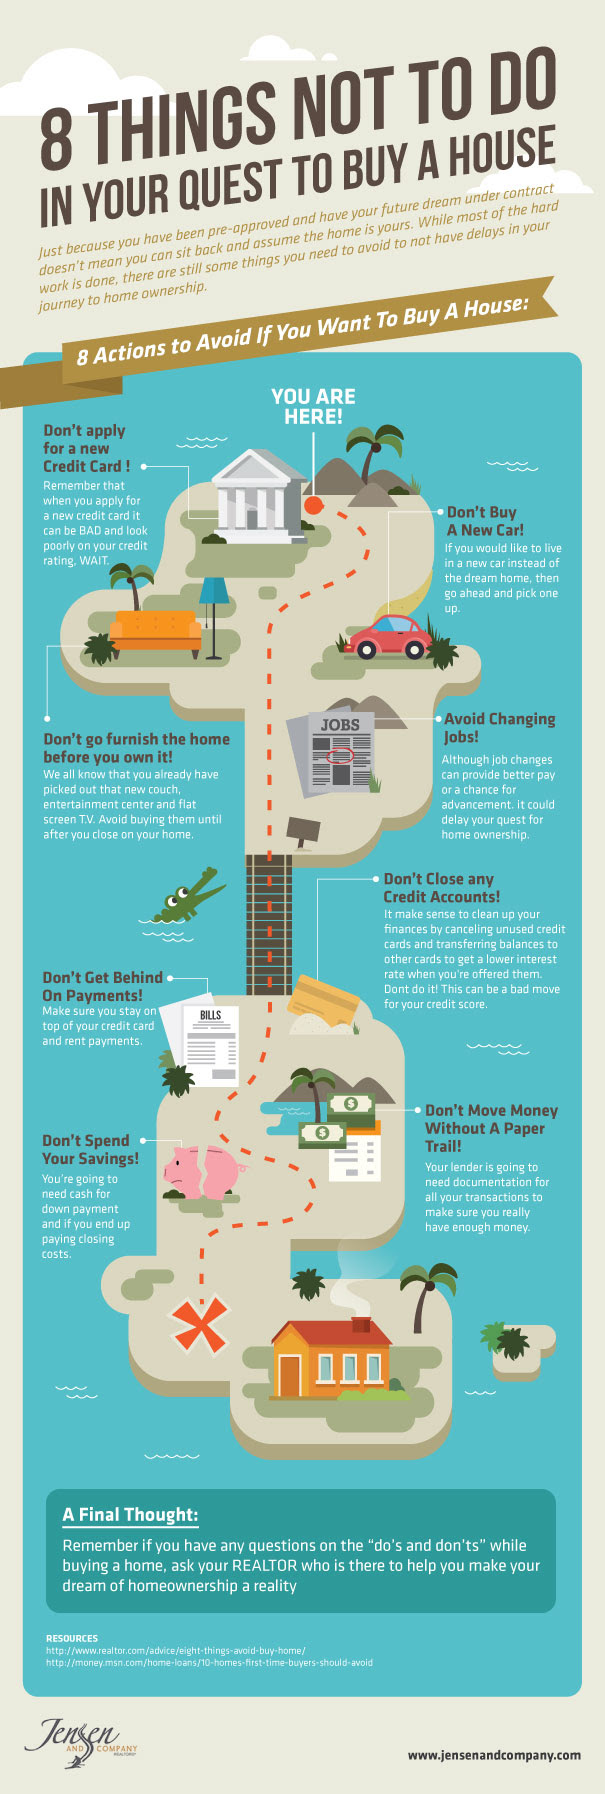 8 things not to do in your quest to buy a house infographic visualistan. Black Bedroom Furniture Sets. Home Design Ideas